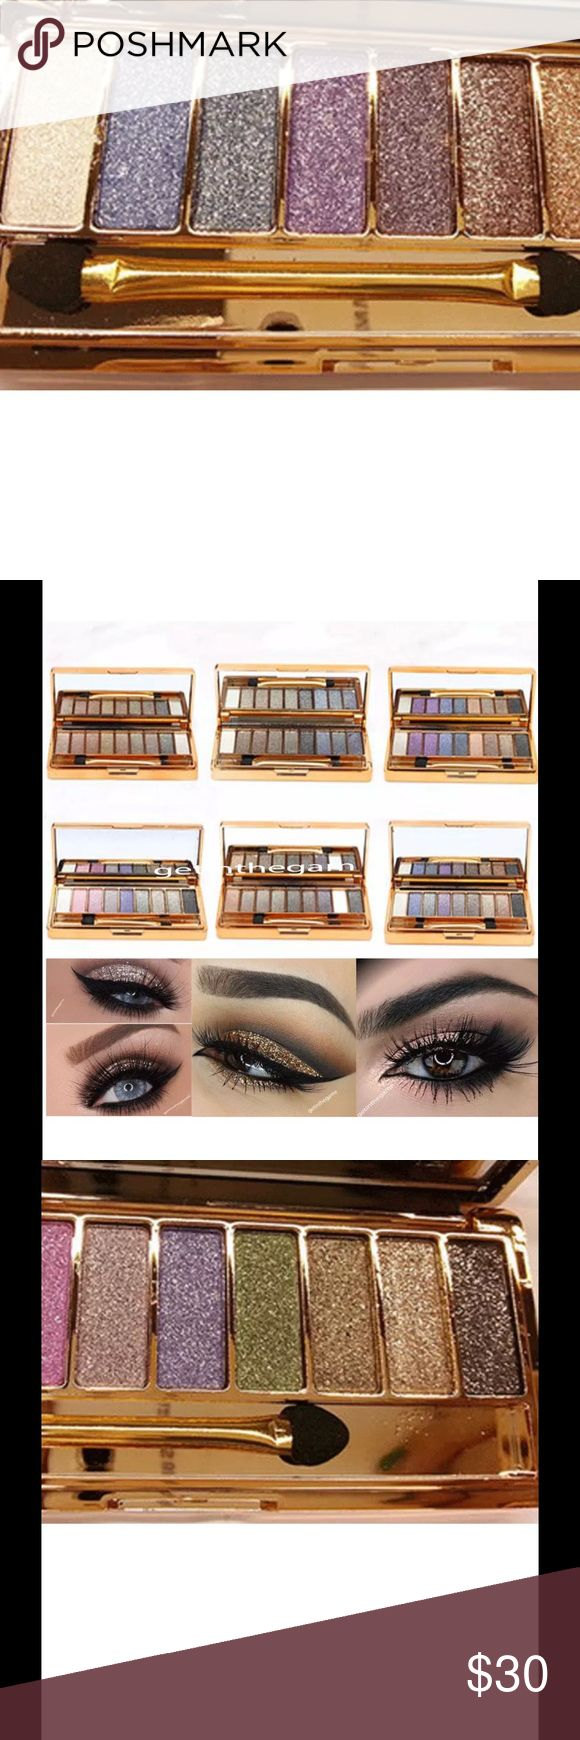 9 Colors Shimmer Eyeshadow Palette & Cosmetic Set This wonderful 9 colors eyeshadow palette is brand new and made of high quality ingredients, quite pigmented and vibrant, easy to match your look. It is the best choice for professional salon or home use. unbranded Makeup Eyeshadow